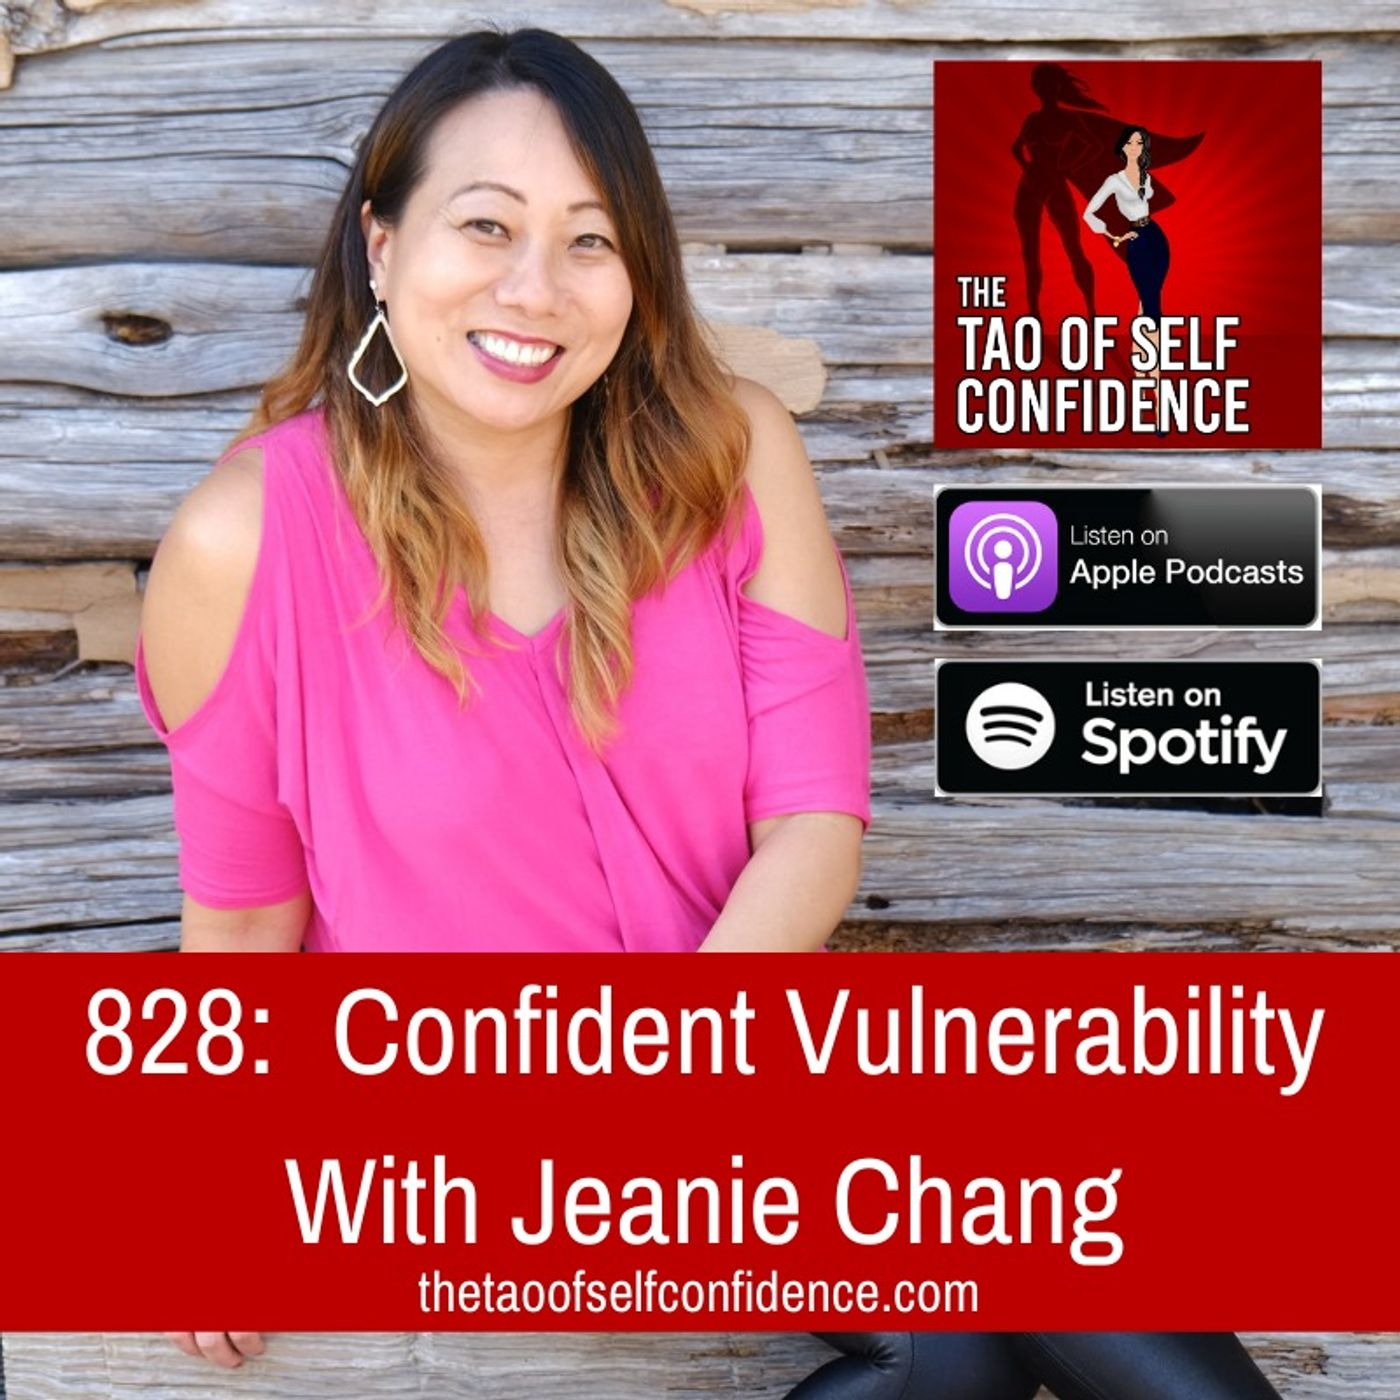 828:  Confident Vulnerability With Jeanie Chang